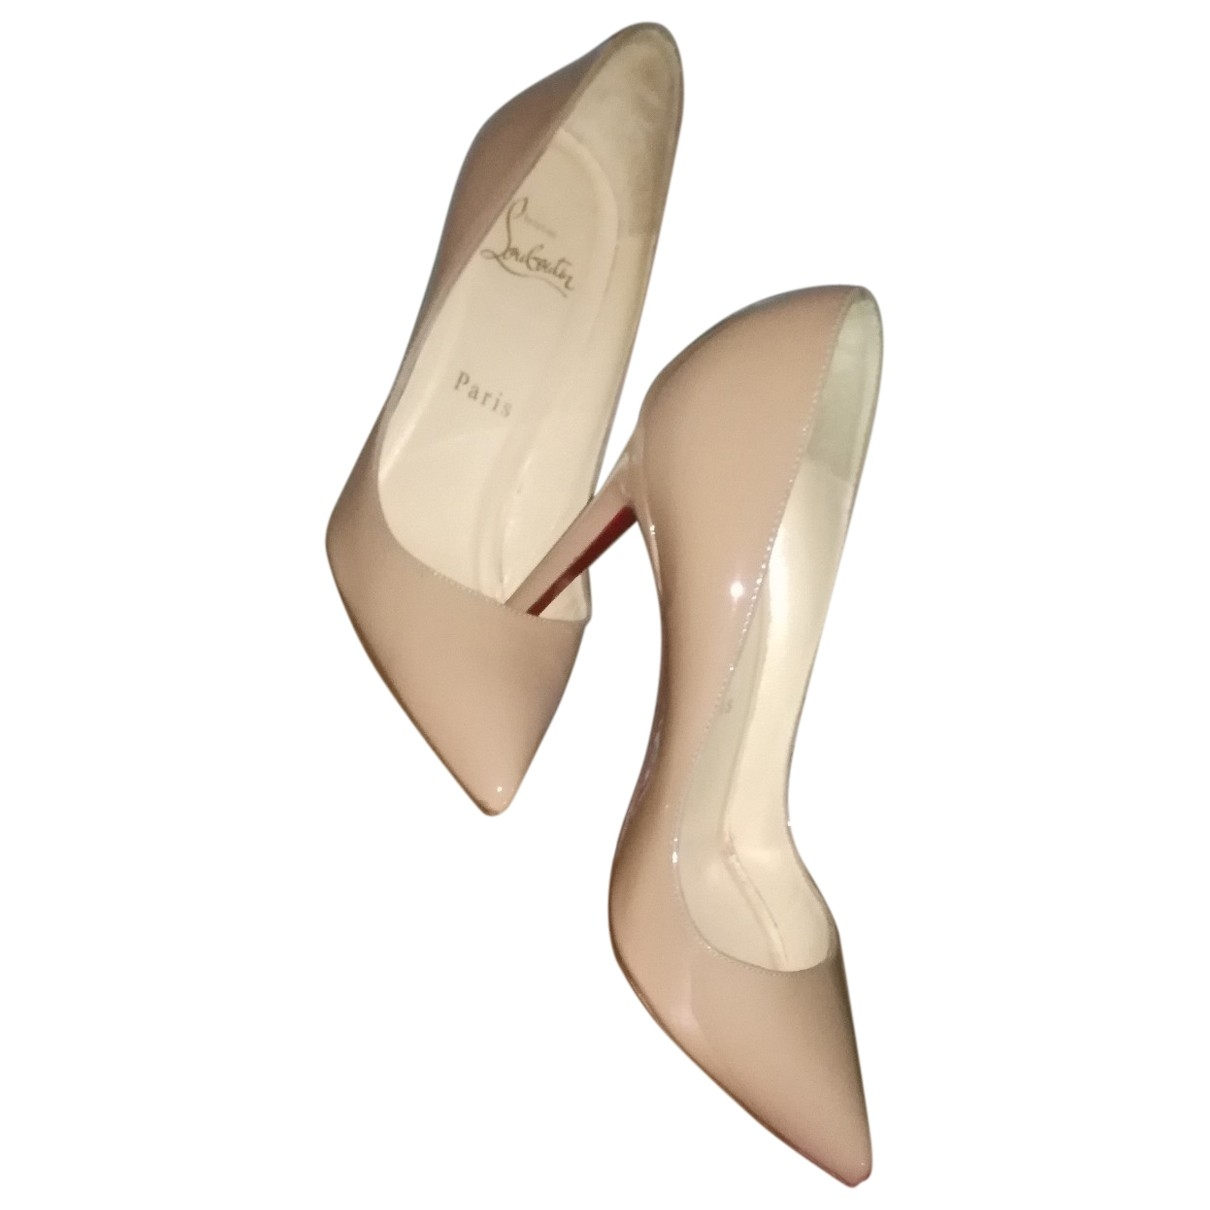 Christian Louboutin Pigalle Beige Patent leather Heels for Women 36 EU